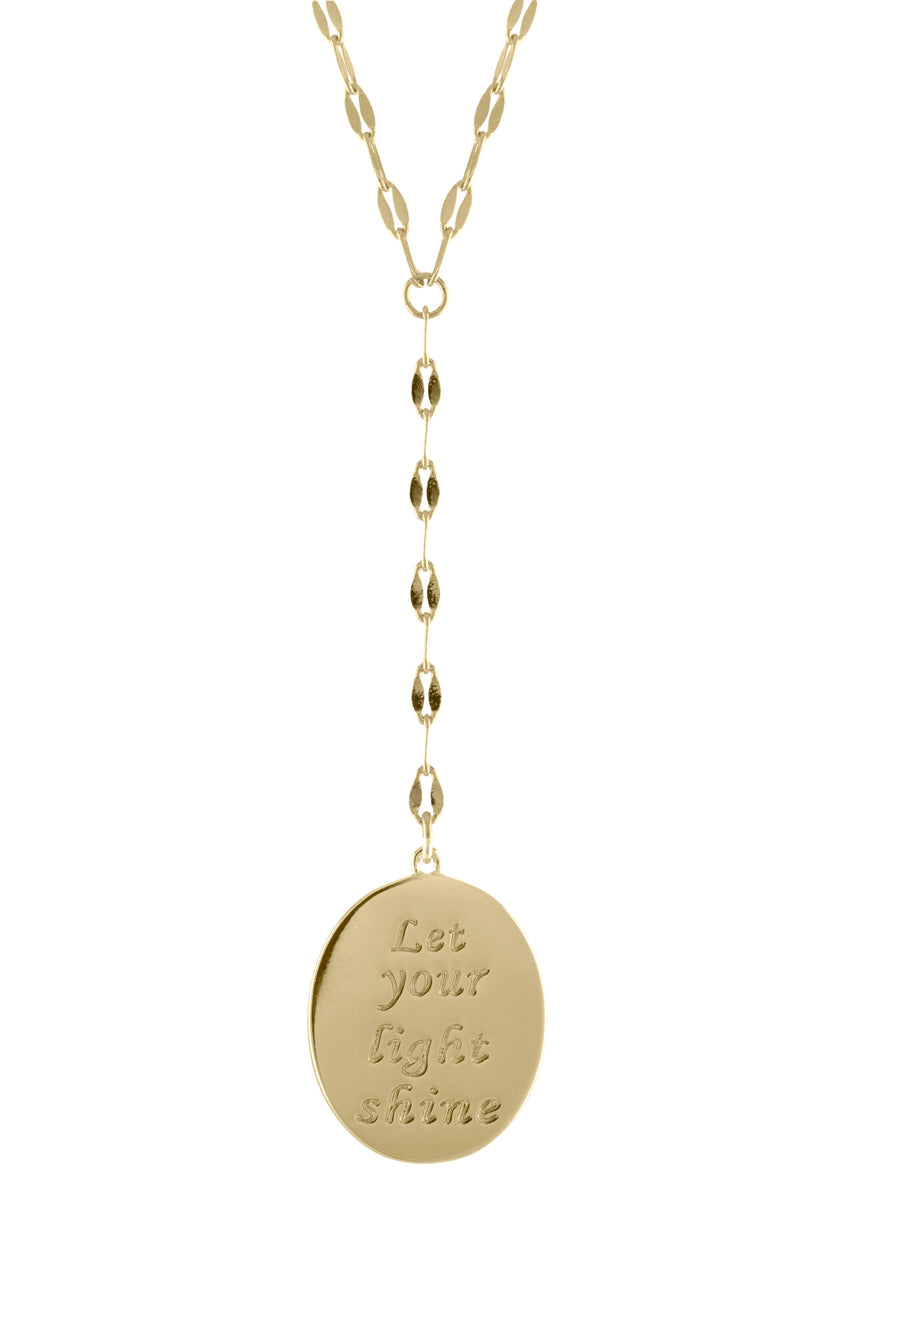 Let Your Light Shine Necklace